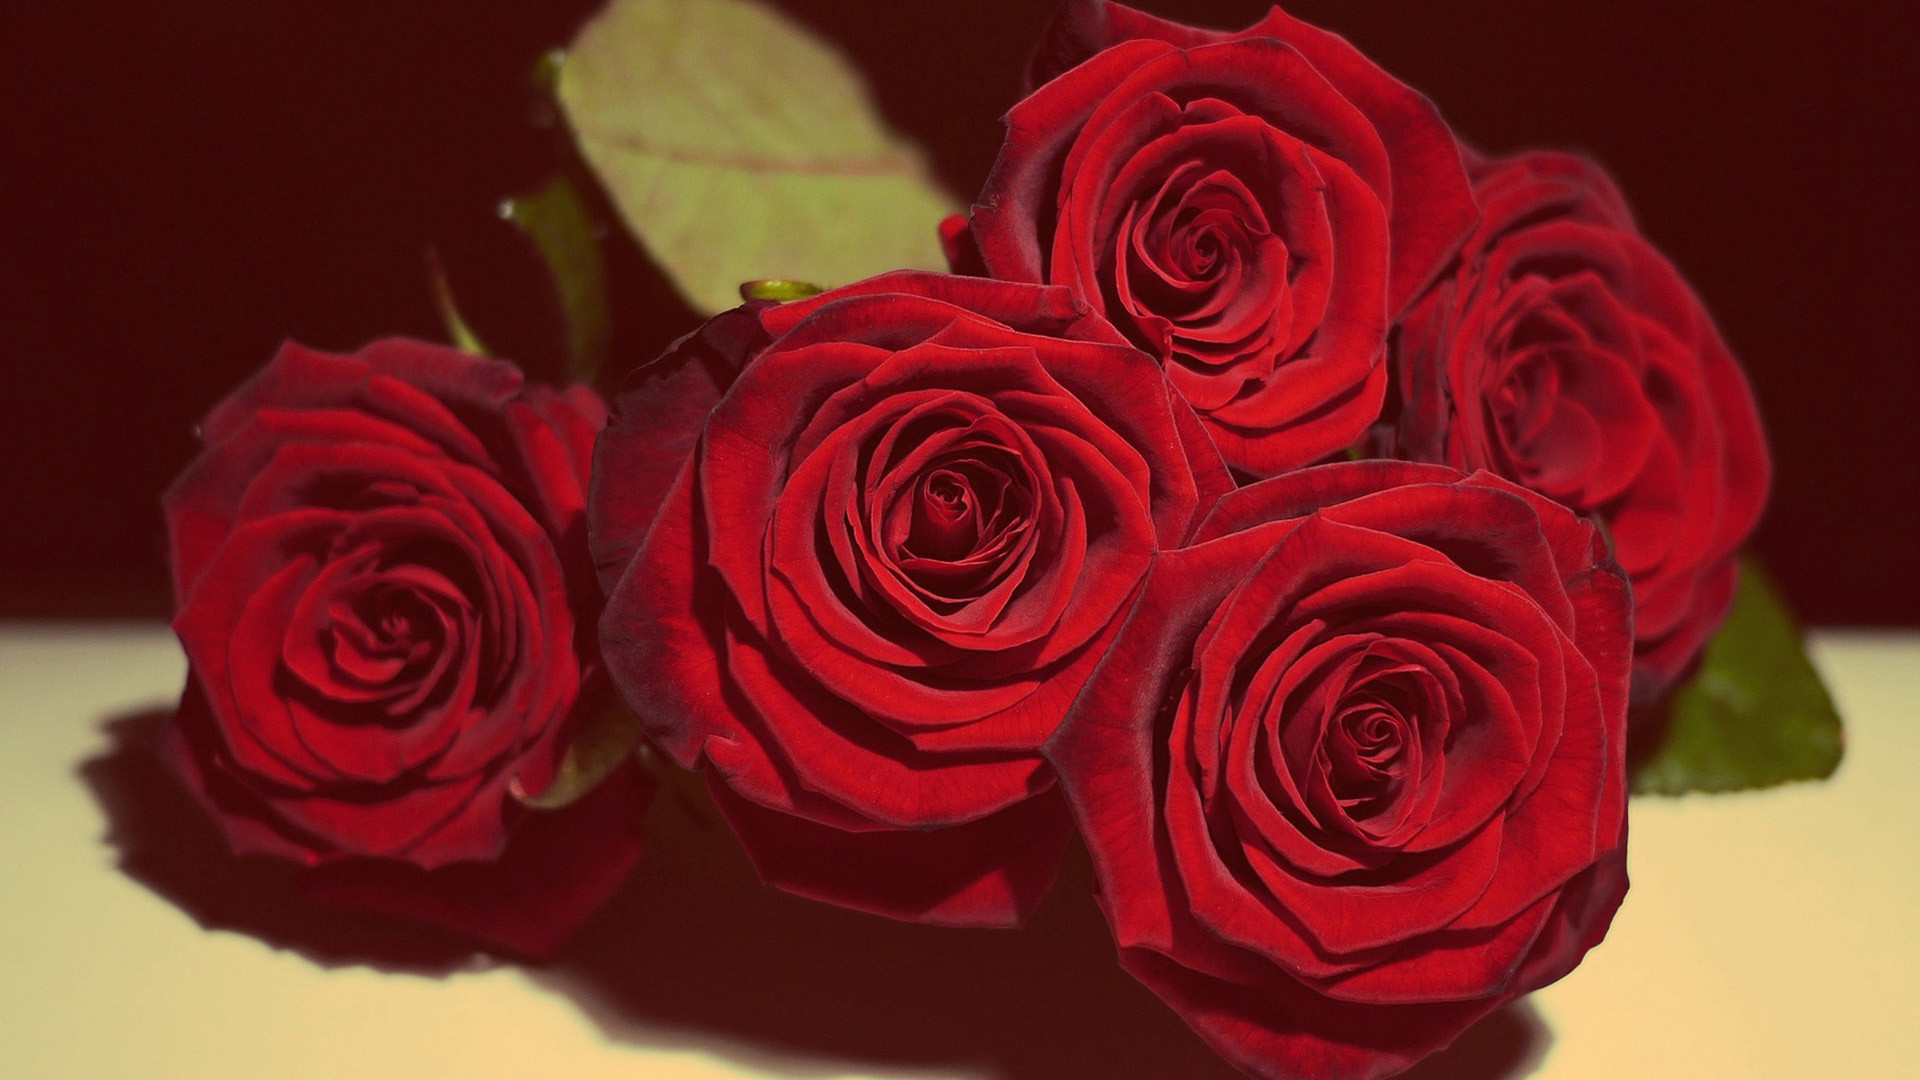 1920x1080 Five red roses wallpaper, Rose Flower images, Rose Pictures and .